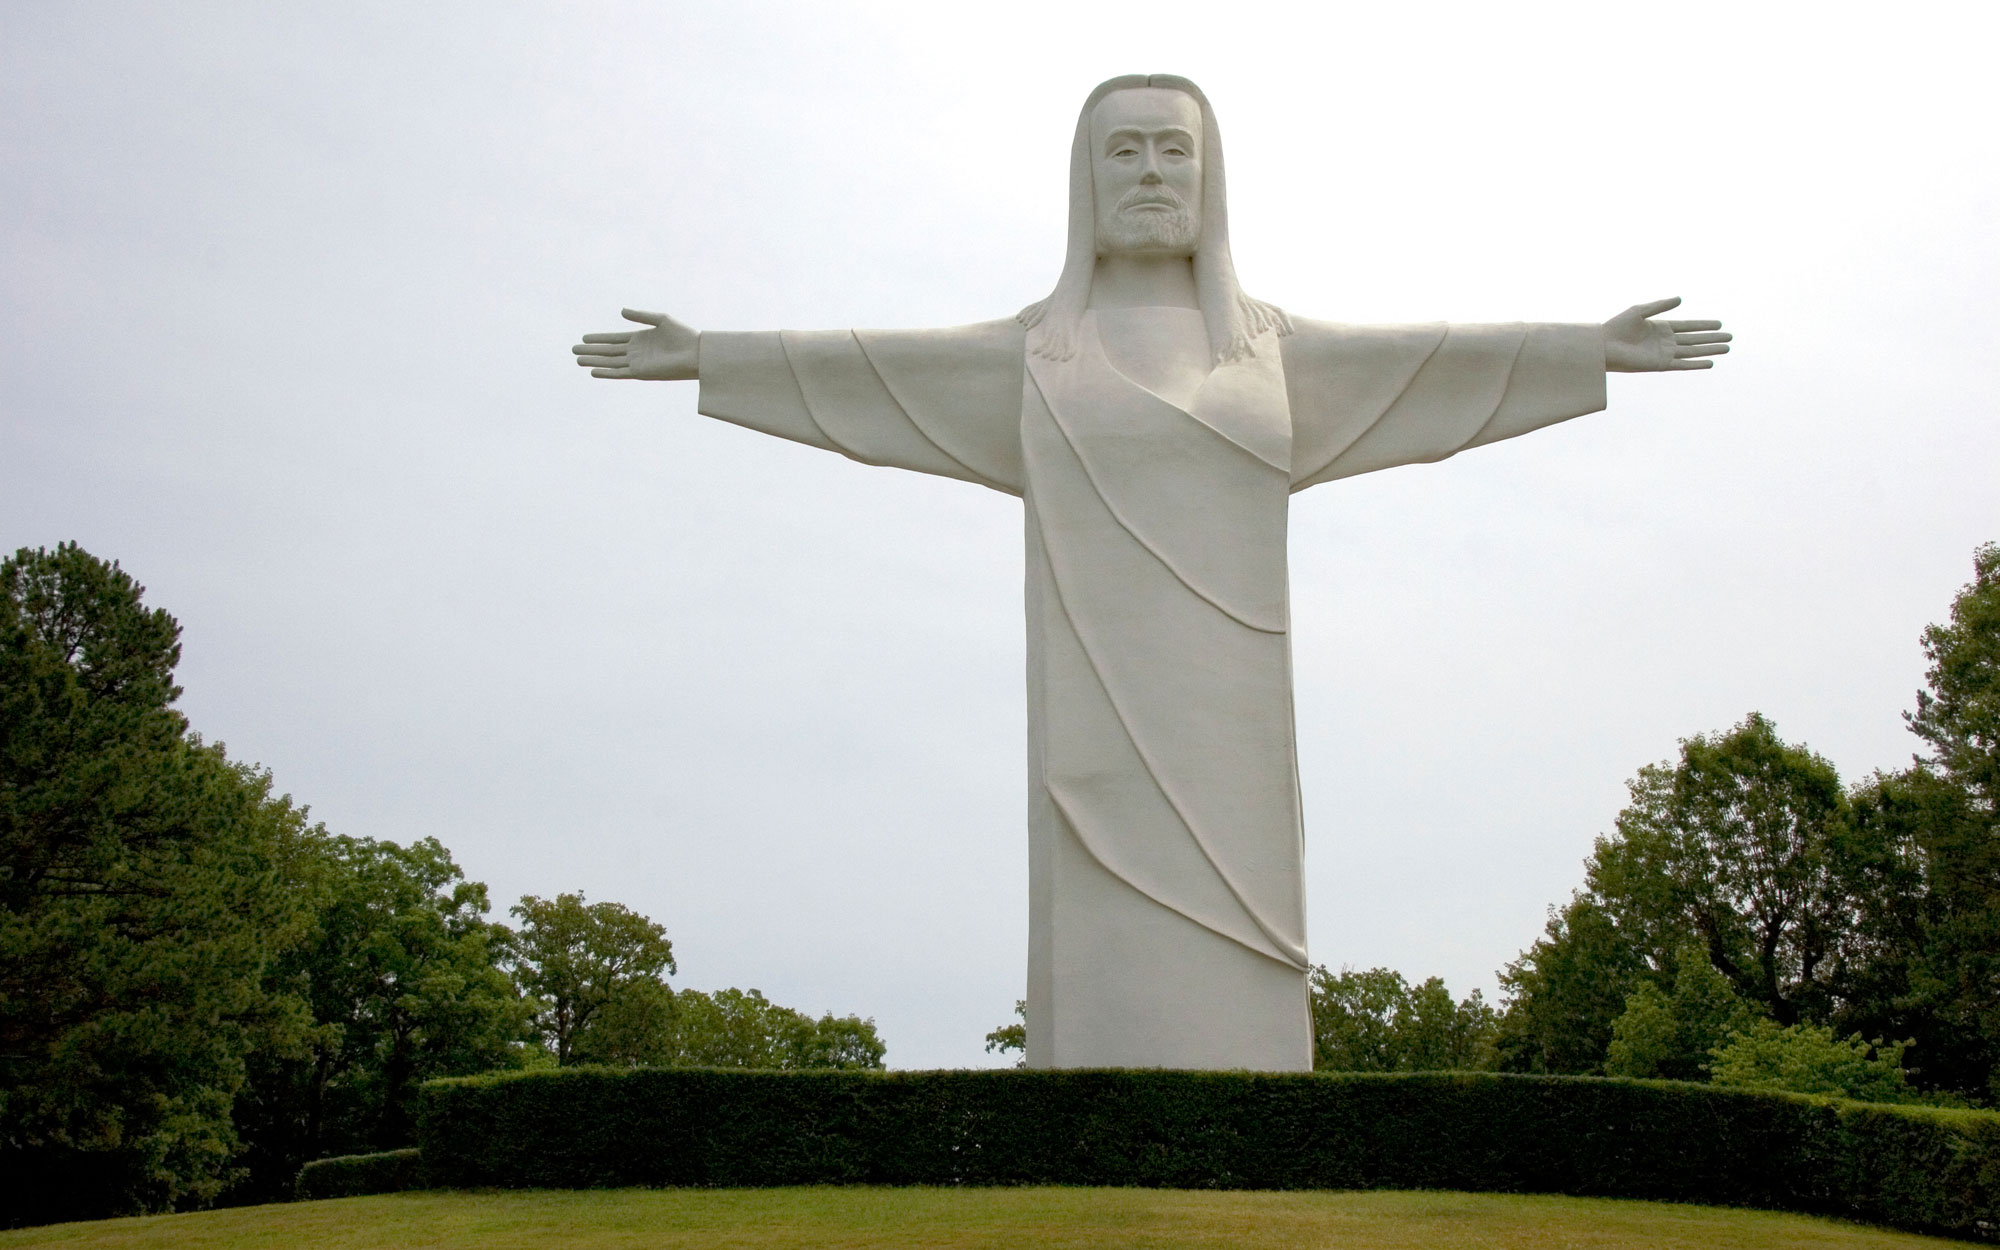 Weirdest Roadside Attractions: Arkansas: Christ of the Ozarks